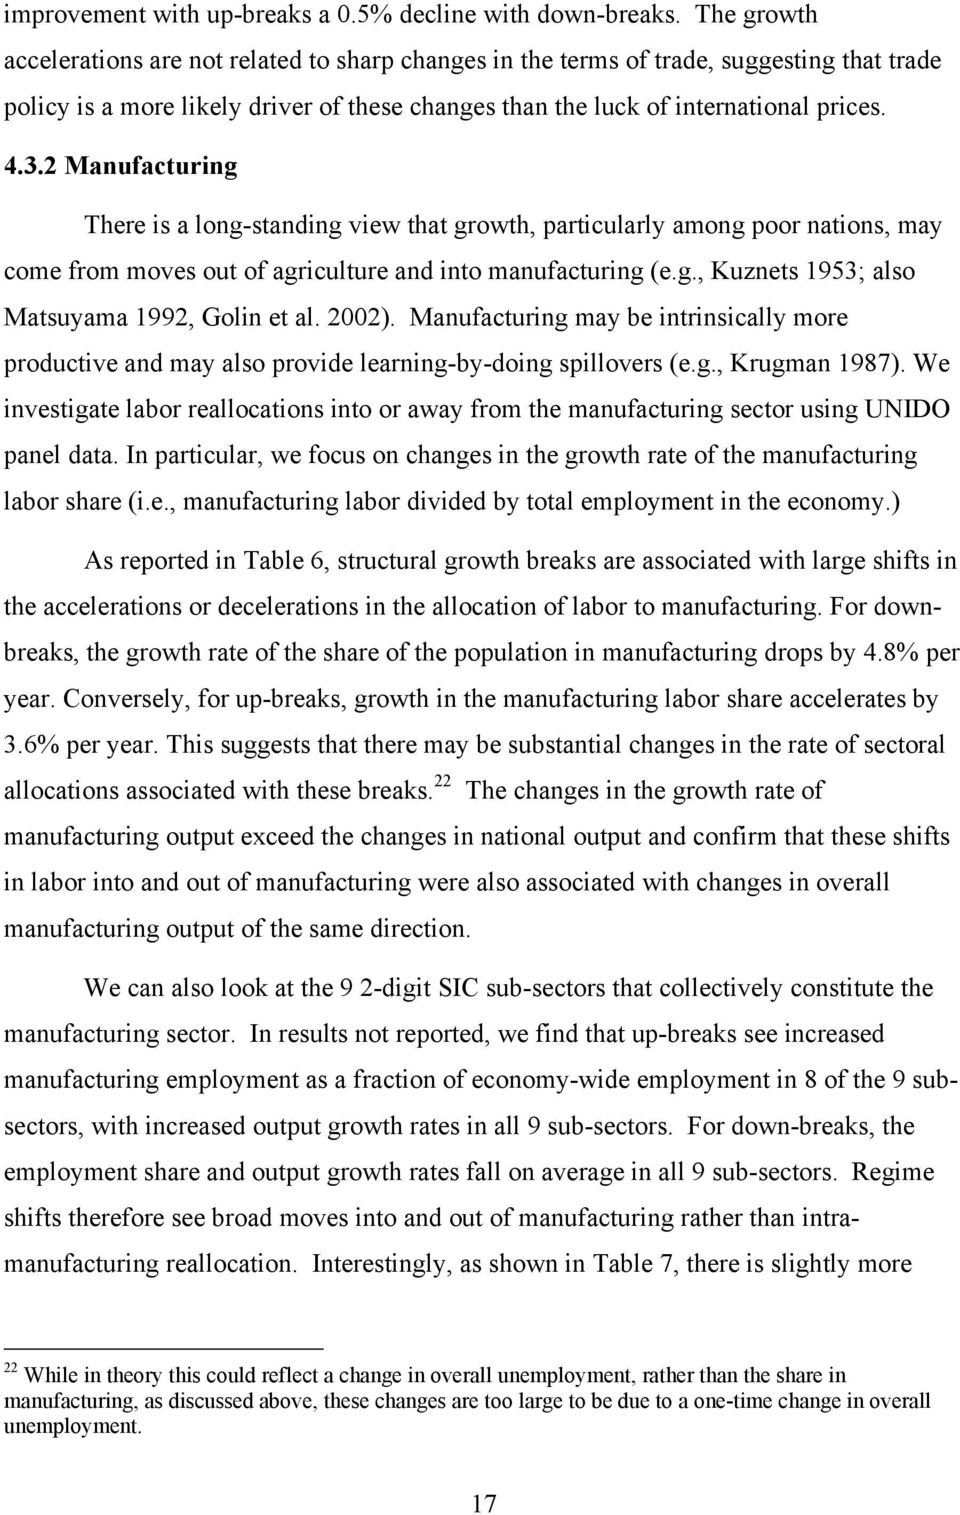 2 Manufacturing There is a long-standing view that growth, particularly among poor nations, may come from moves out of agriculture and into manufacturing (e.g., Kuznets 1953; also Matsuyama 1992, Golin et al.